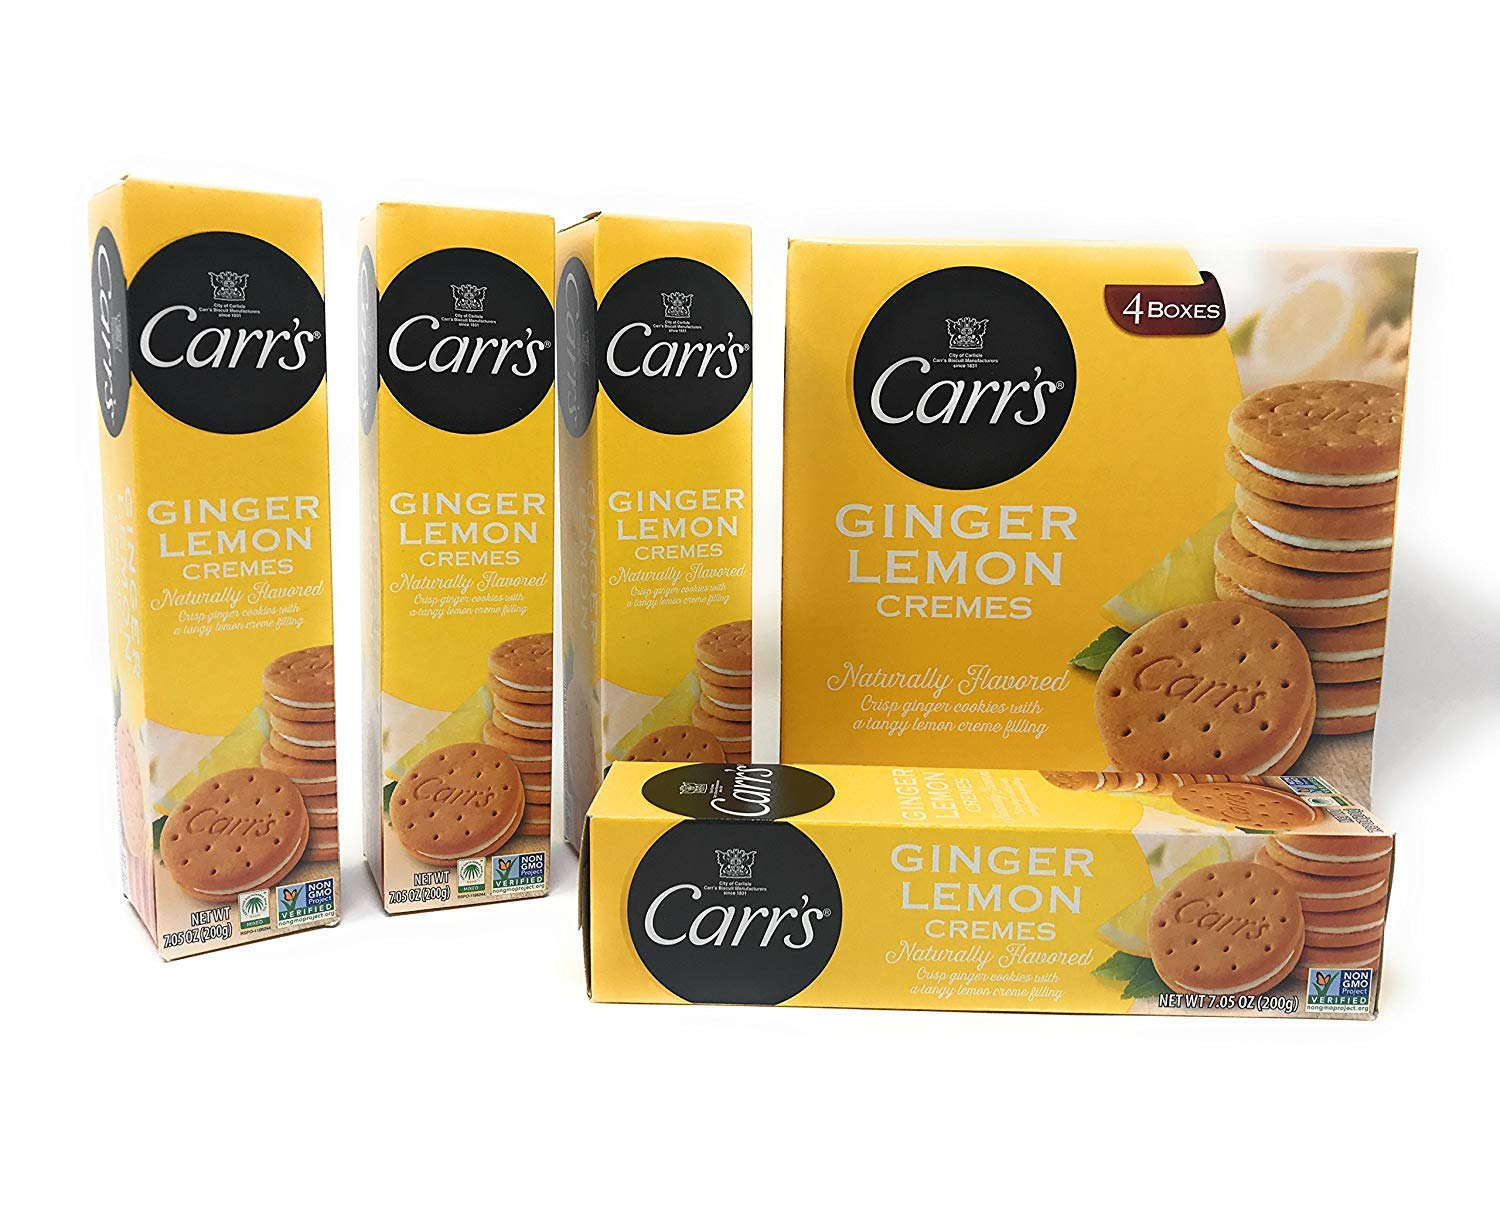 Carr's Ginger Lemon Creme, 7.05-Ounce Boxes (Pack of 12) by Carr's